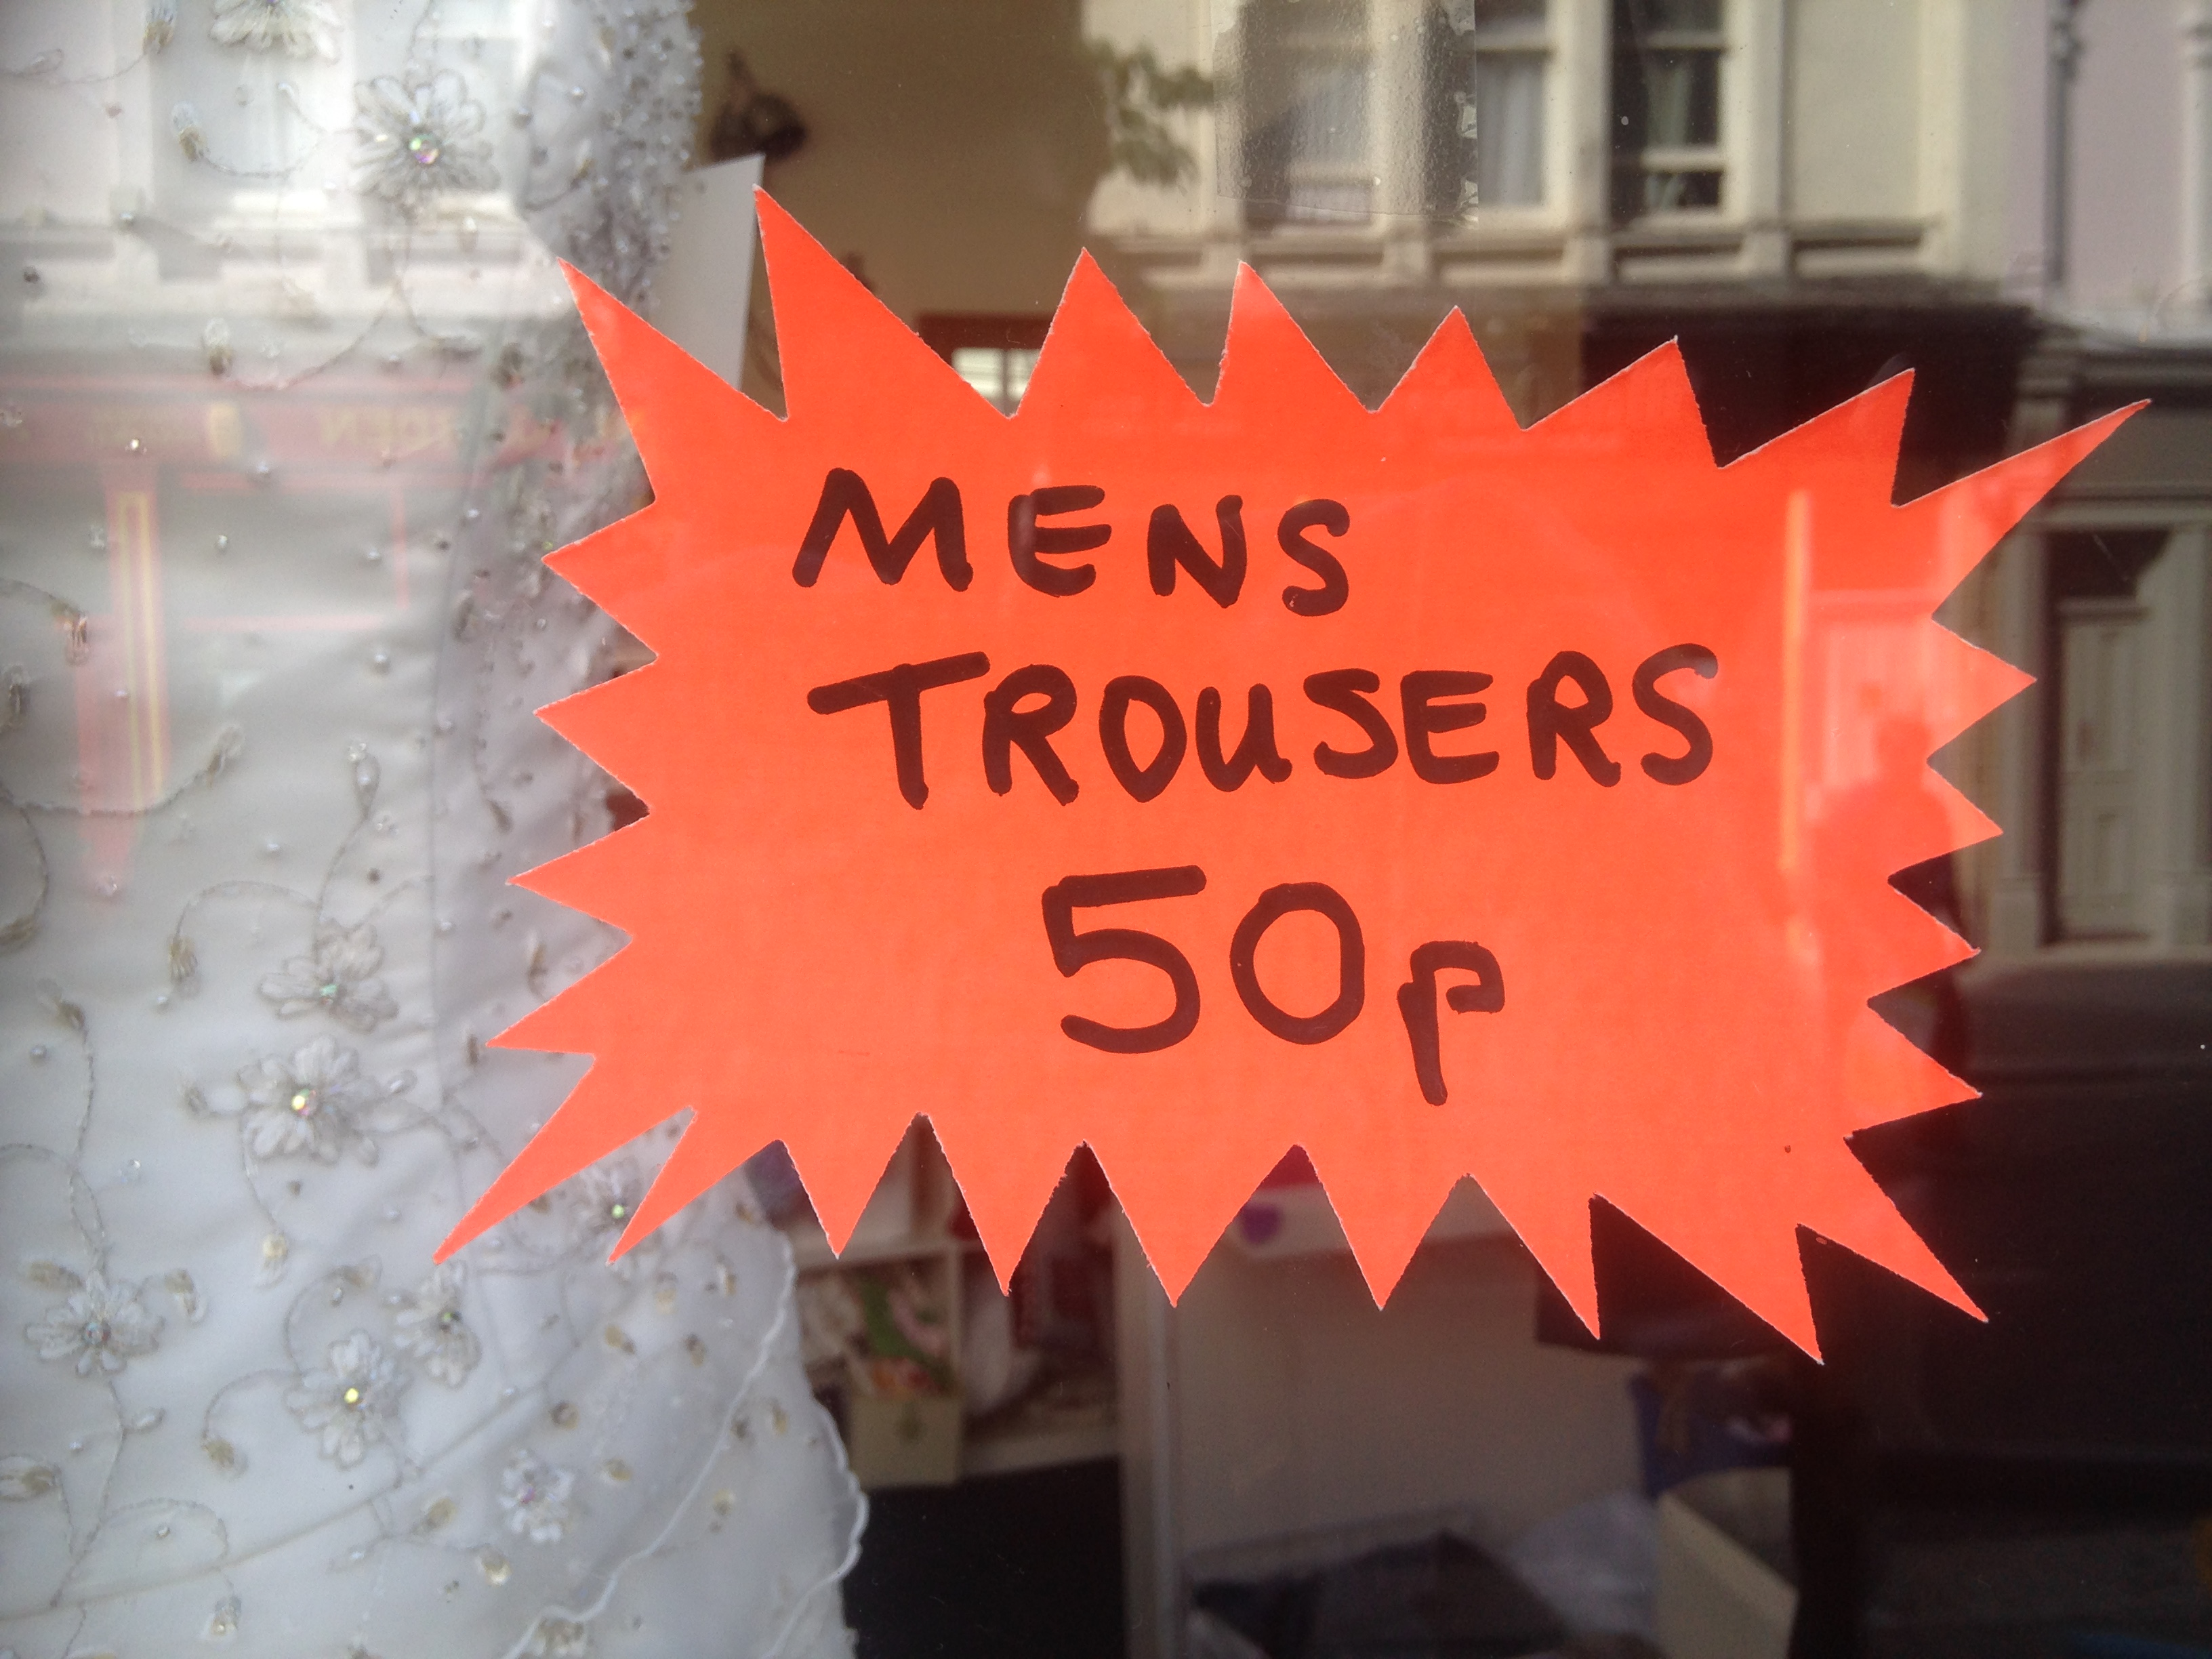 Men's Trousers 50p